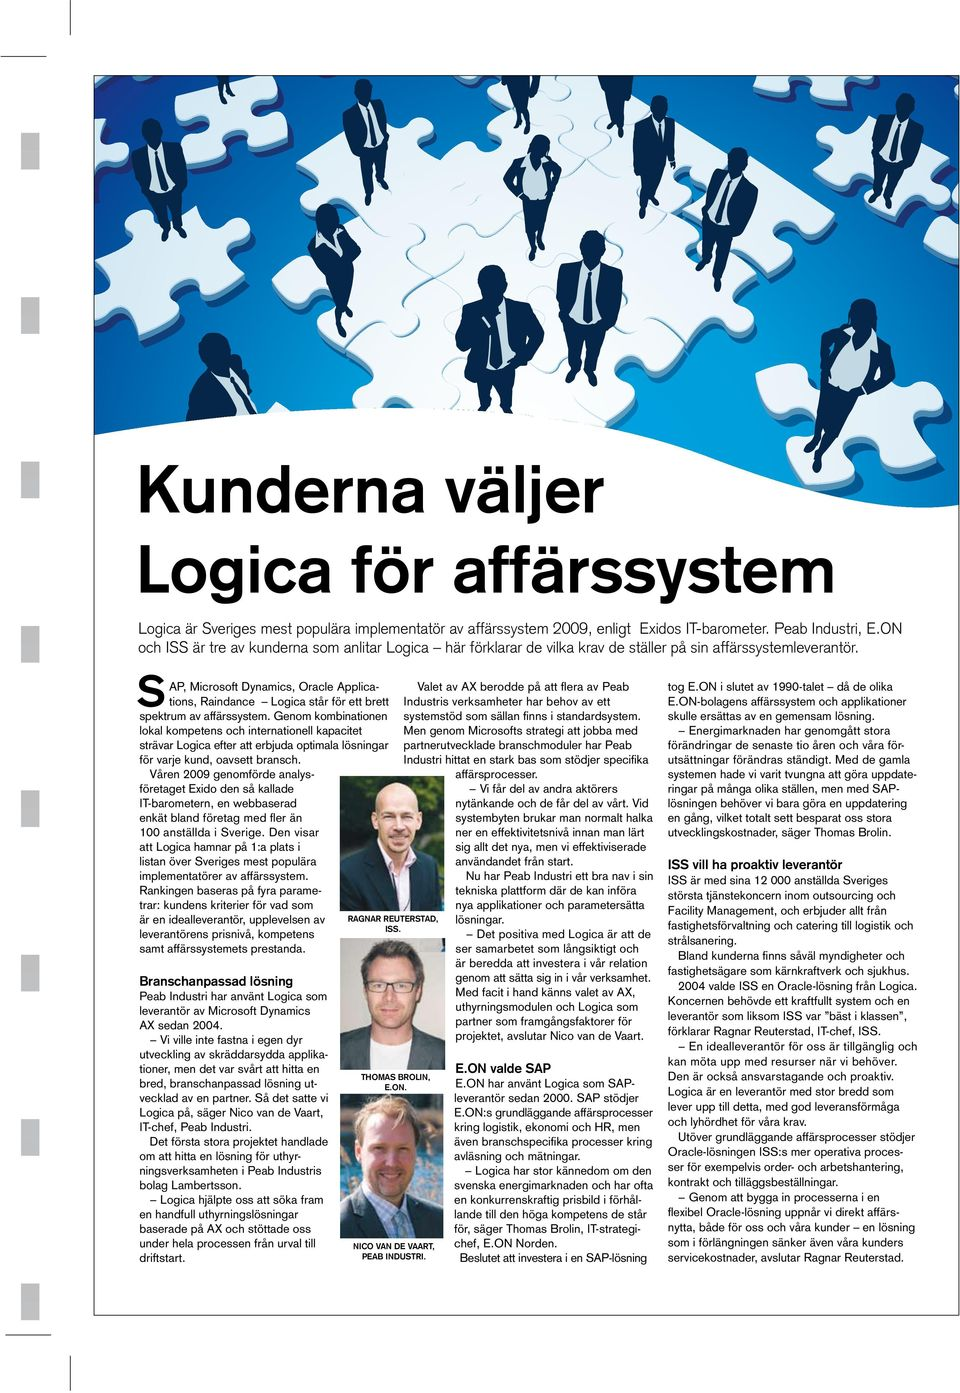 S AP, Microsoft Dynamics, Oracle Applications, Raindance Logica står för ett brett spektrum av affärssystem.